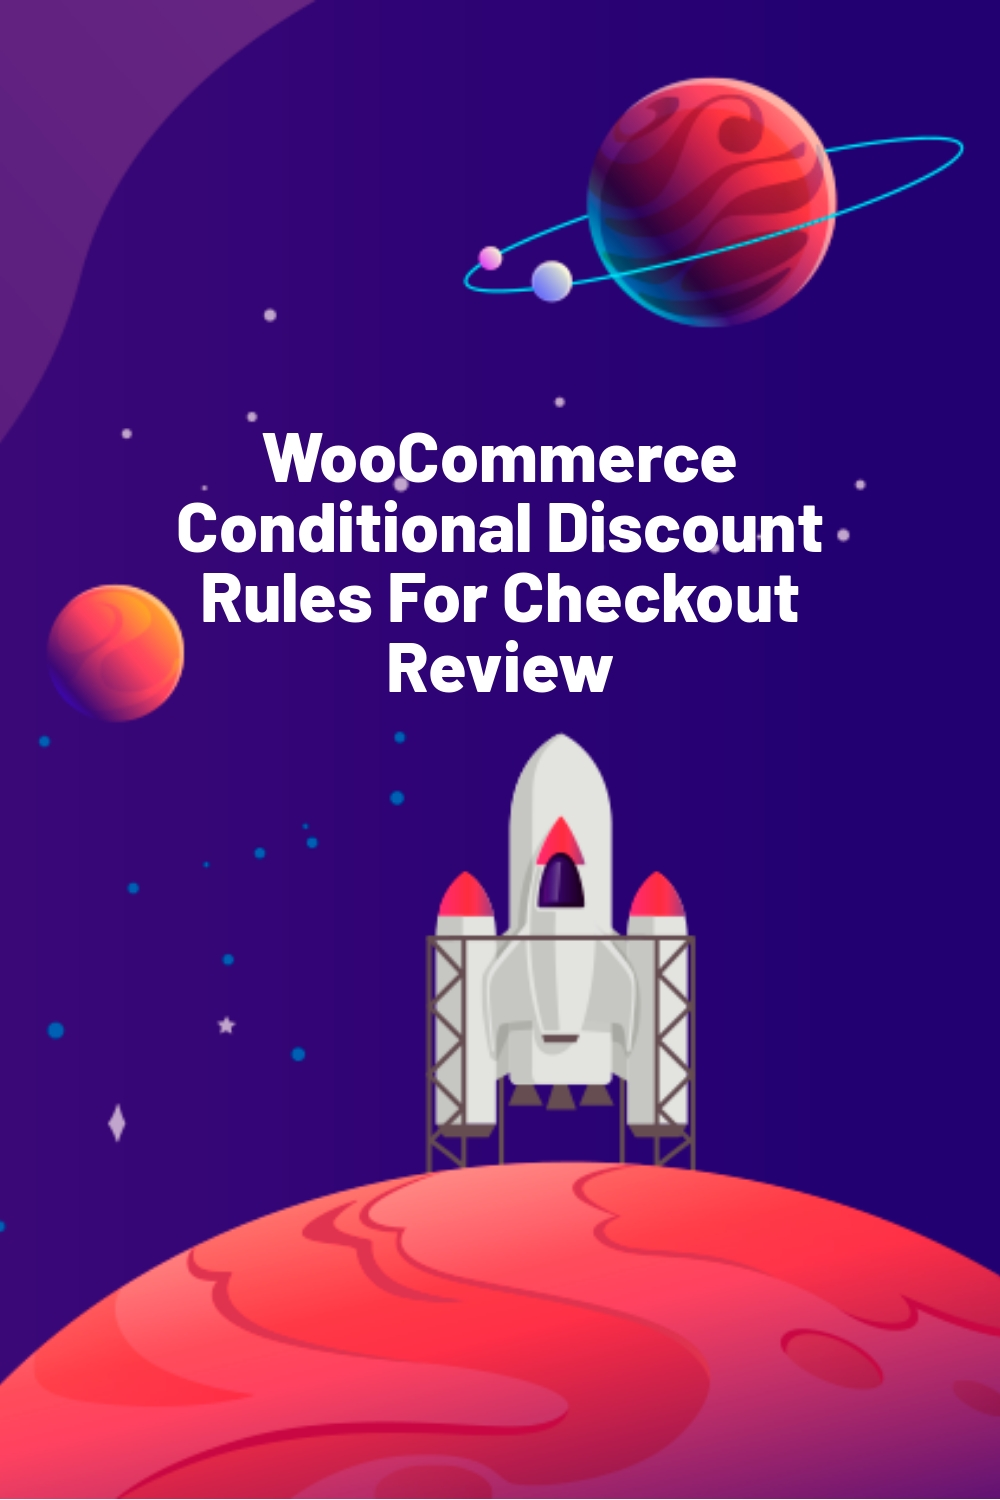 WooCommerce Conditional Discount Rules For Checkout Review